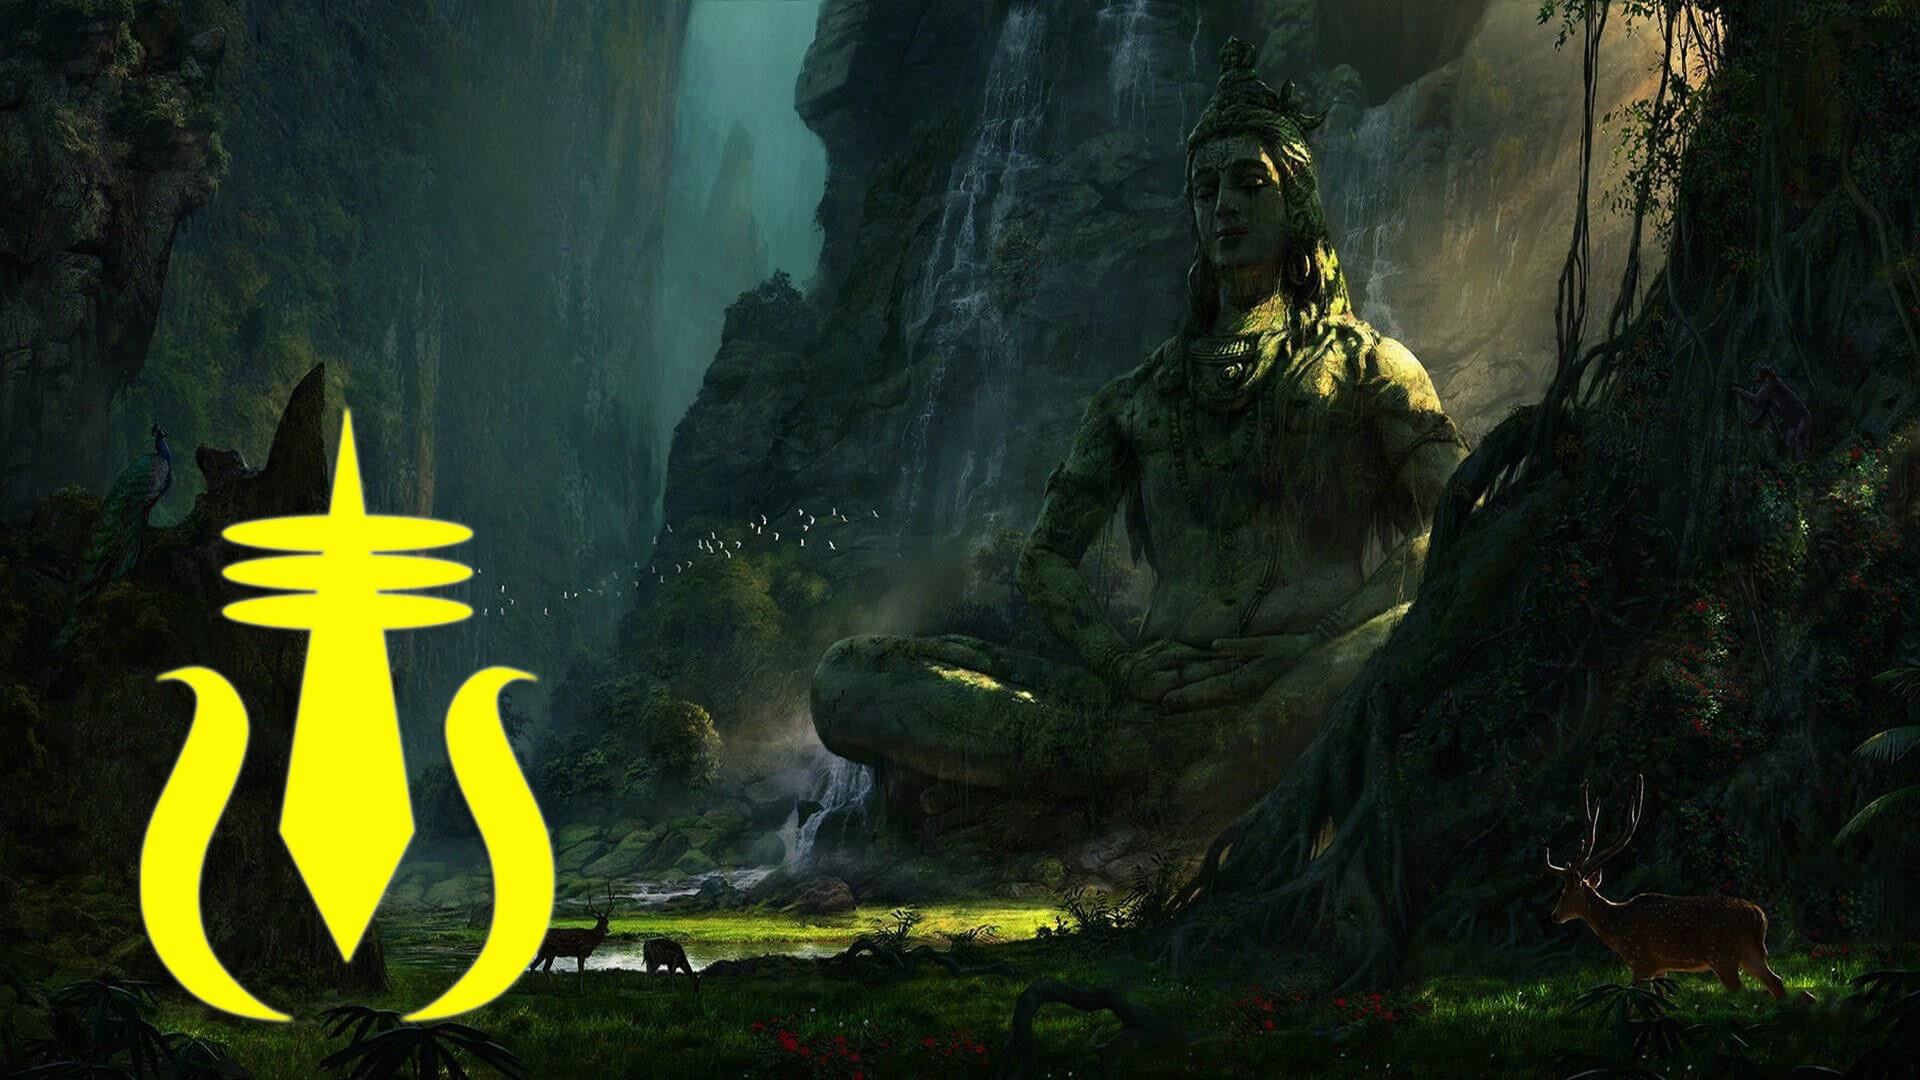 Lord Shiva Youga Wallpaper Hd Wallpapers For Pc Free 78215 Hd Wallpaper Backgrounds Download